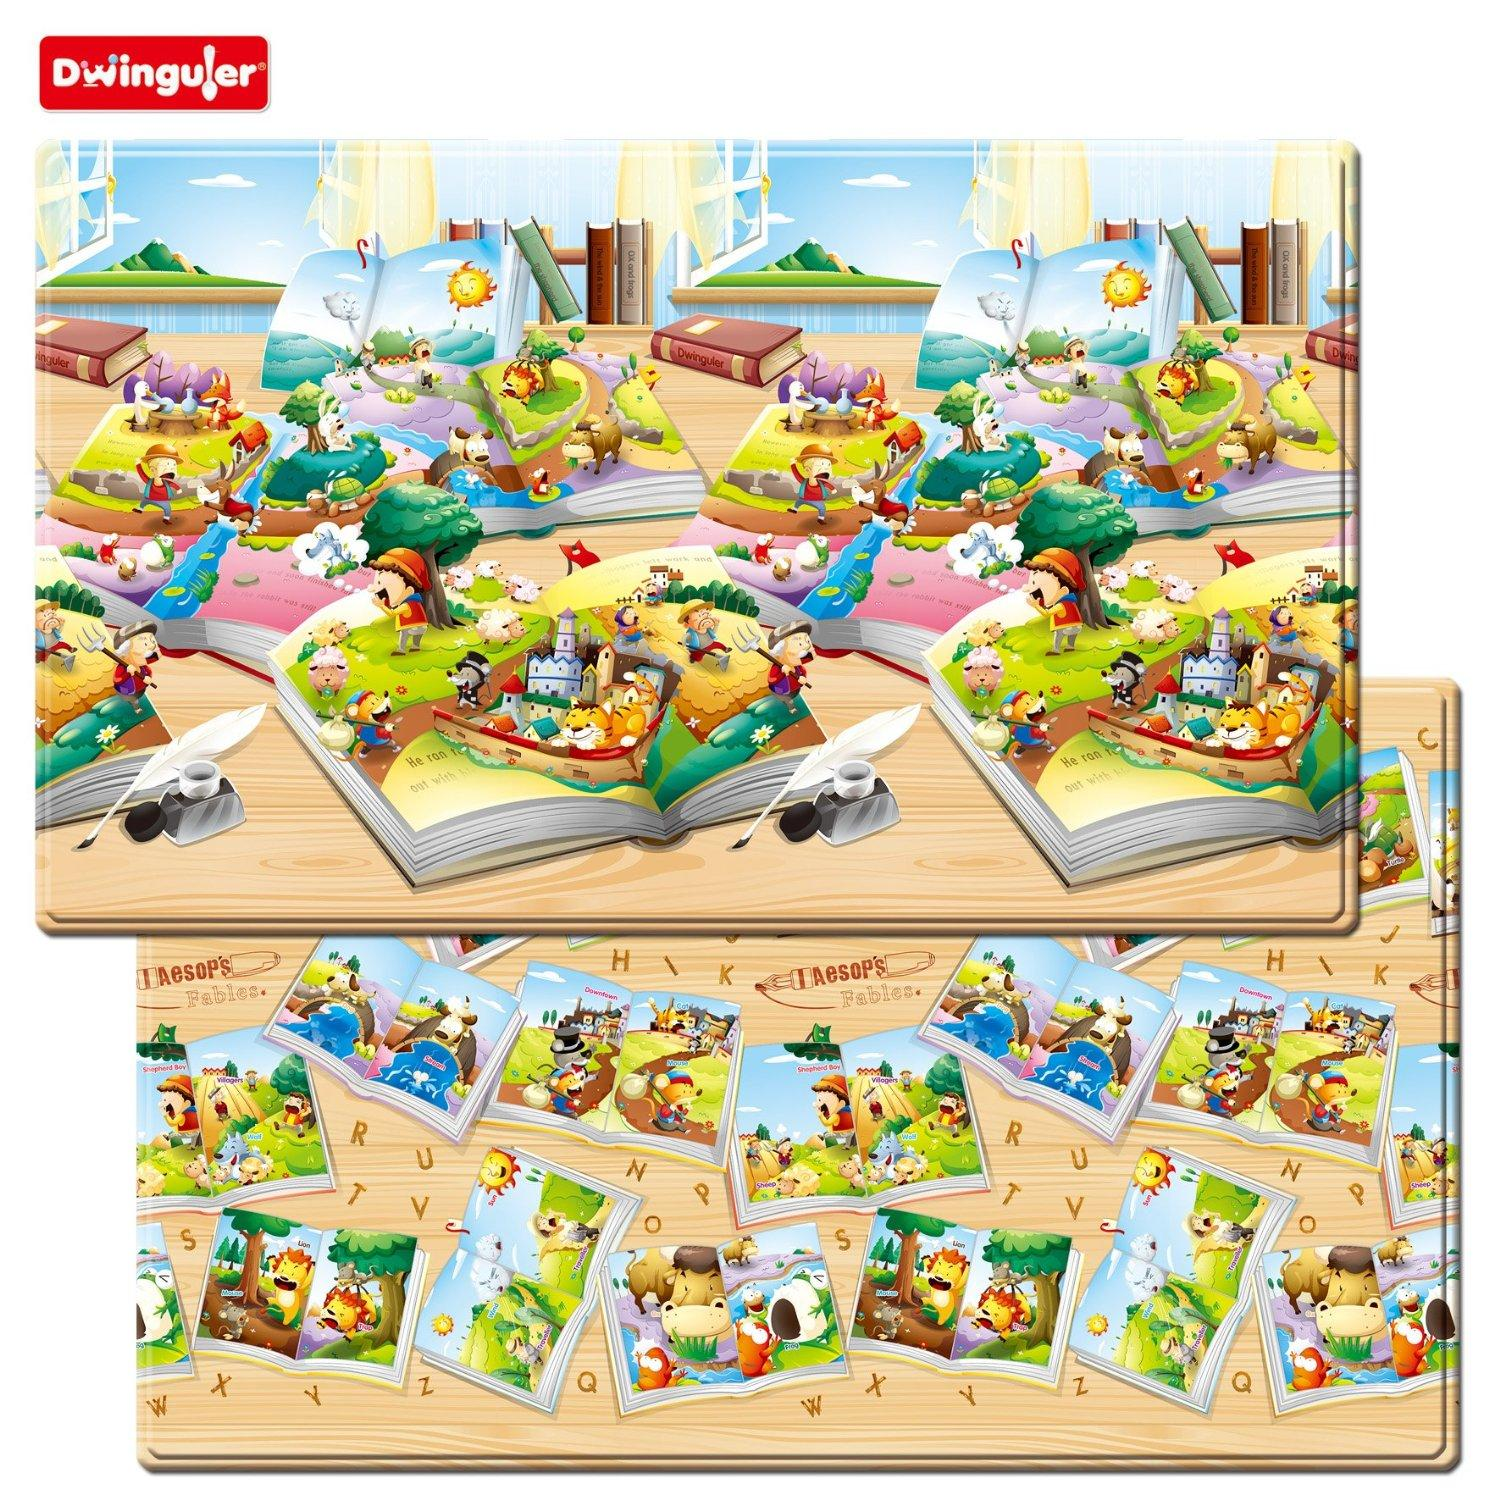 $139.95 Dwinguler Augmented Reality Kids Play Mat (Large, Aesop's Fables)